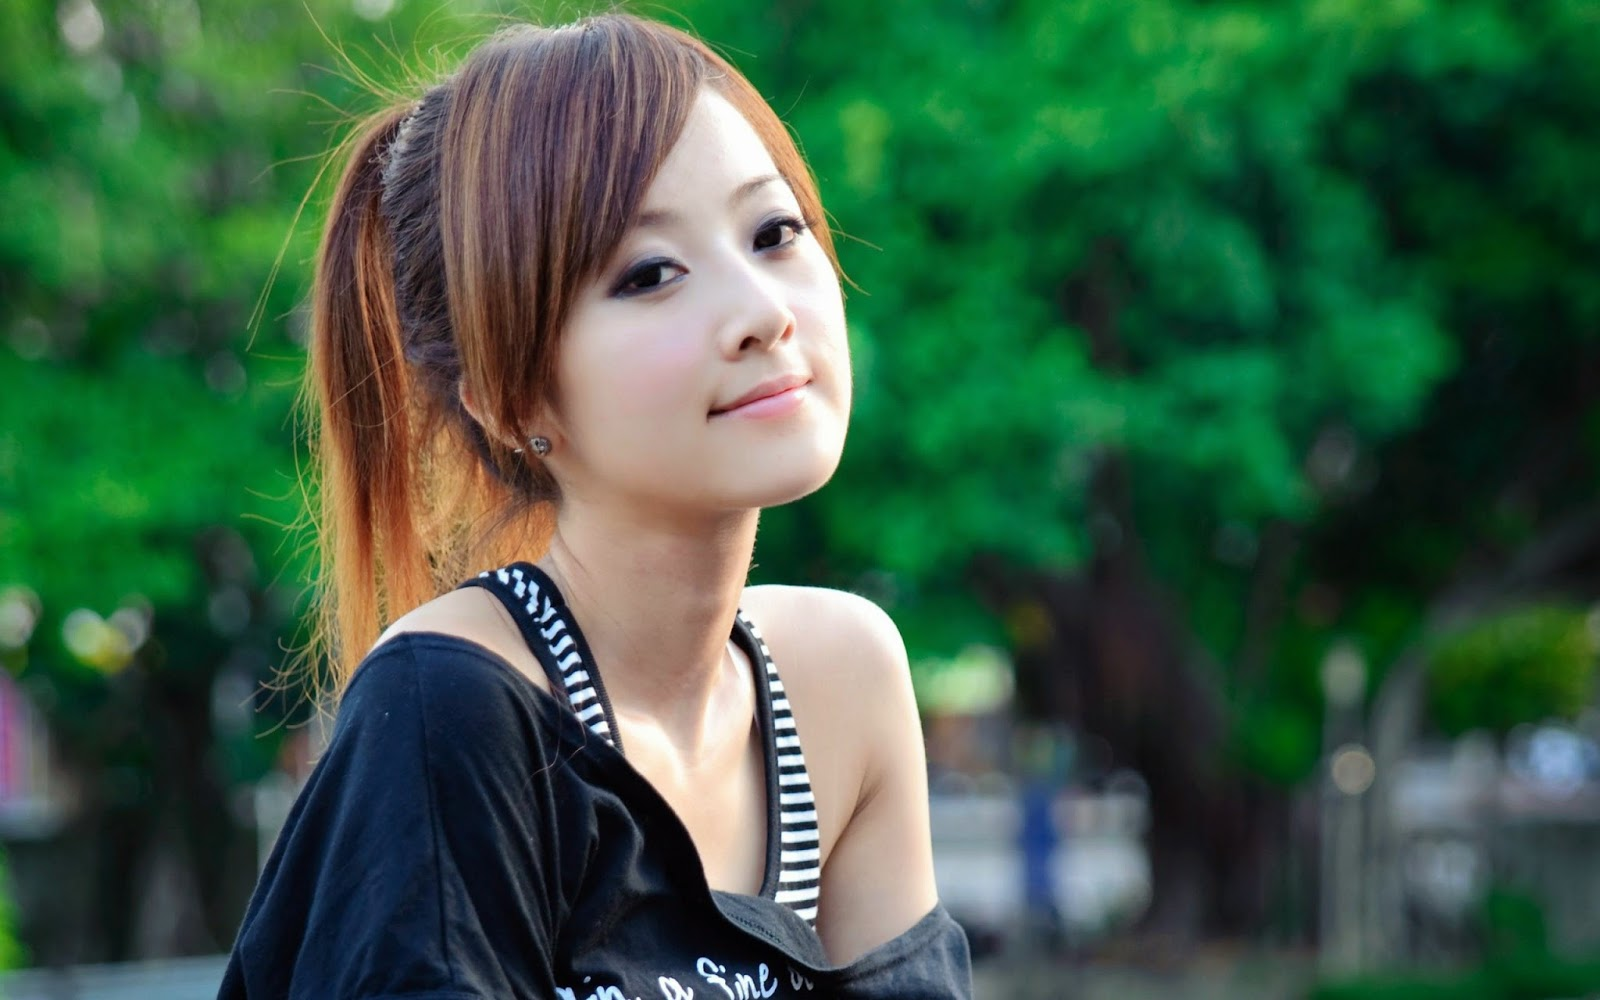 60+ Cute and Beautiful Girls Wallpapers (HD Widescreen) | Most